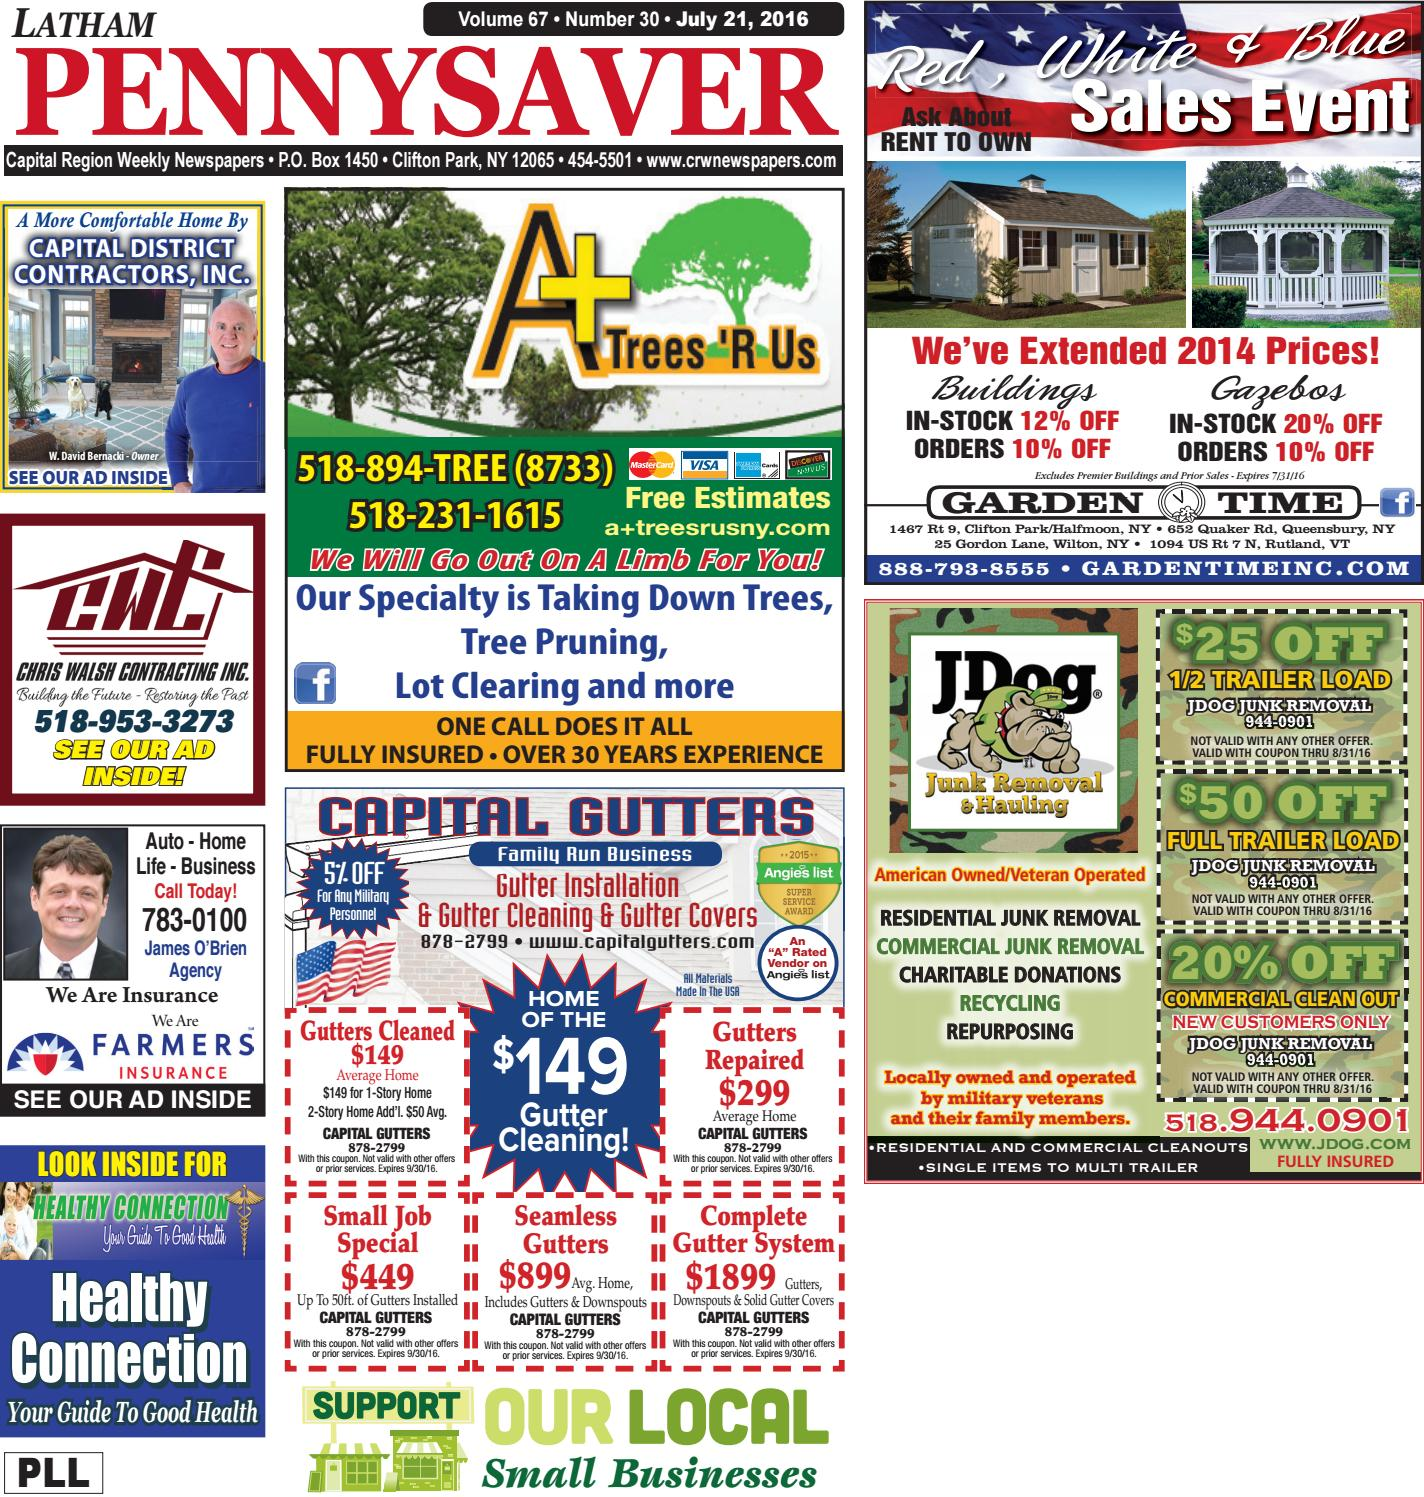 Latham Pennysaver 072116 By Capital Region Weekly